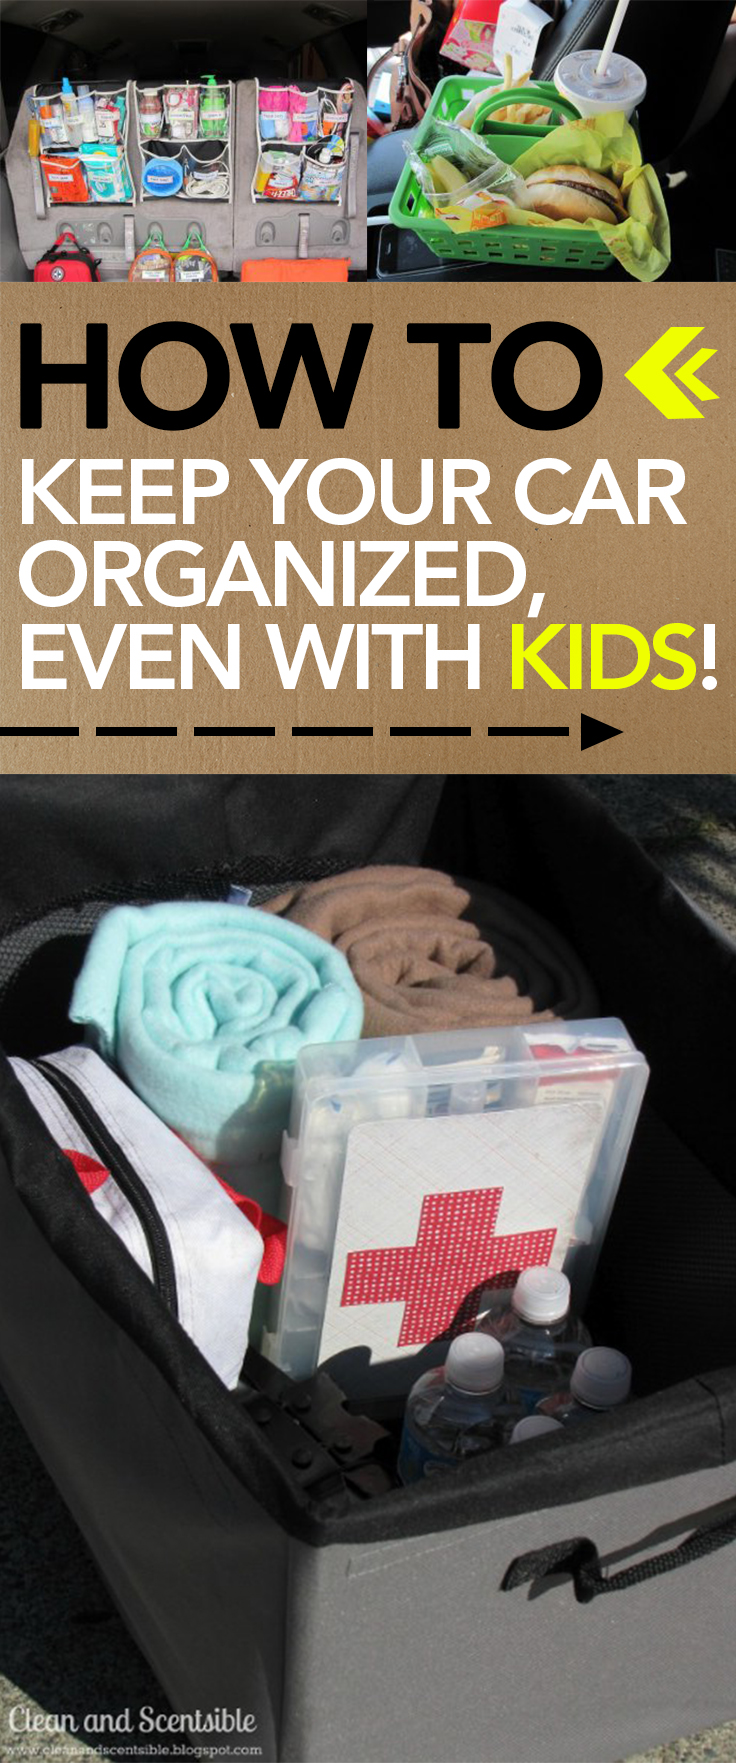 Car organization, organized car, keep your car organized, popular pin, DIY clean, DIY organization, staying organized with kids.